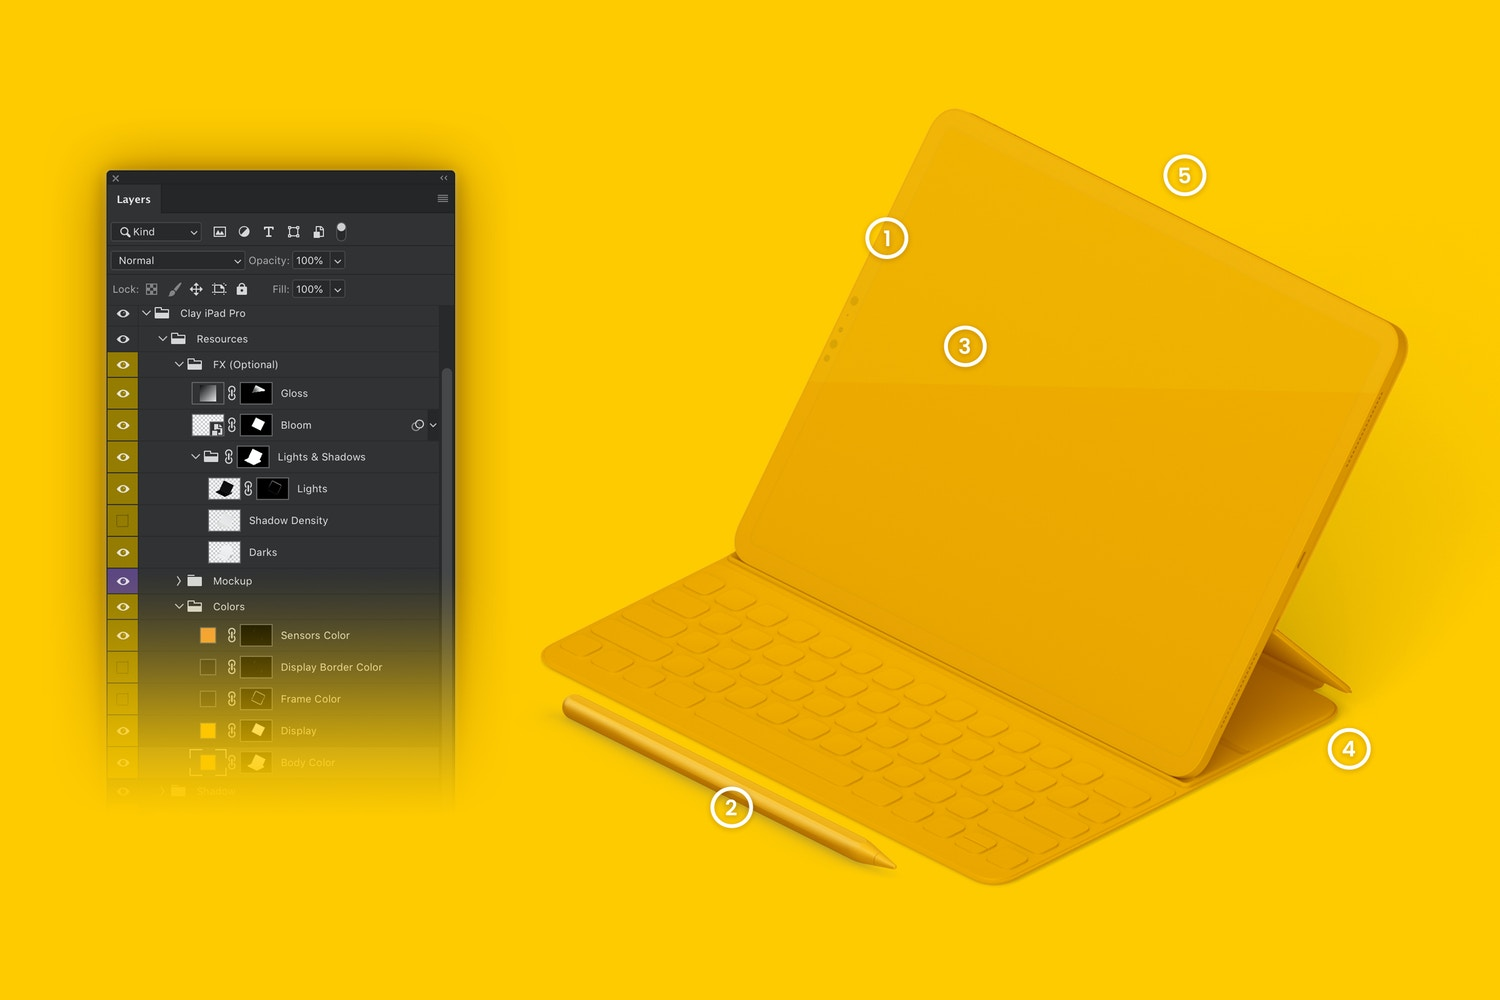 "Clay iPad Pro 12.9"" Mockup, Isometric Right View With Keyboard (6) by Original Mockups on Original Mockups"